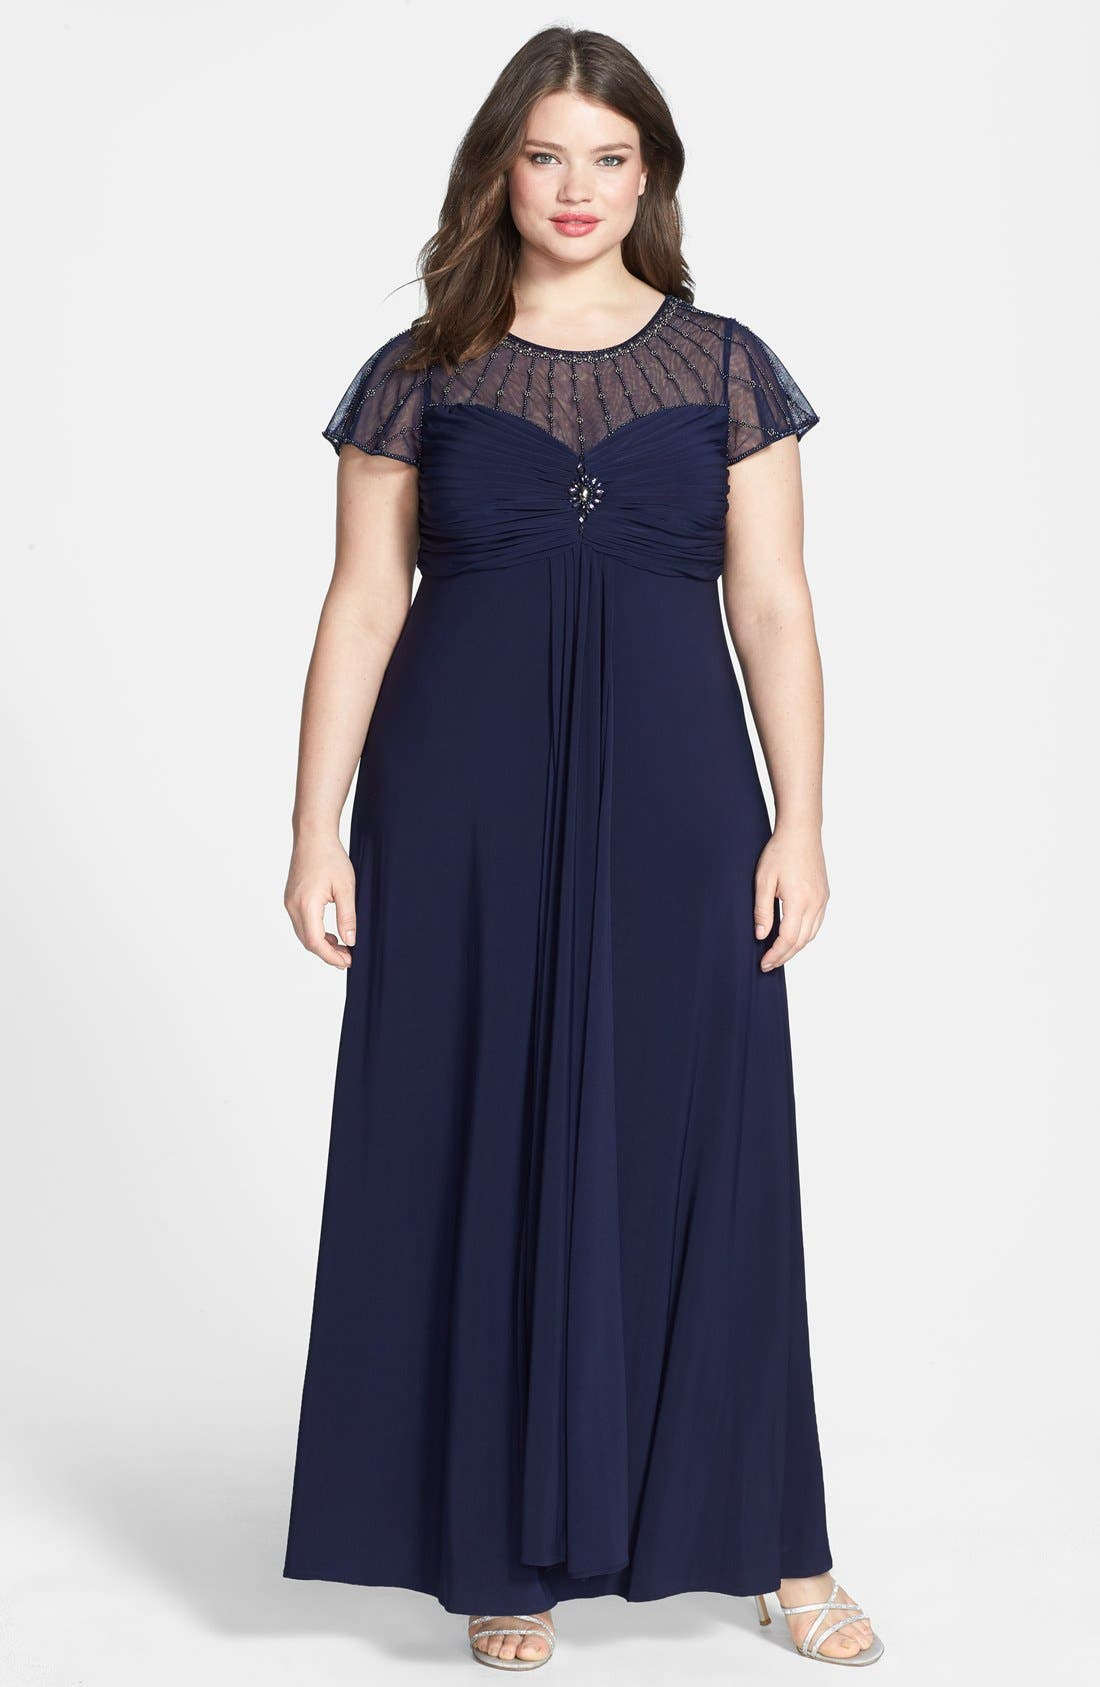 Alternate Image 1 Selected - Patra Beaded Illusion Top Matte Jersey Gown (Plus Size)